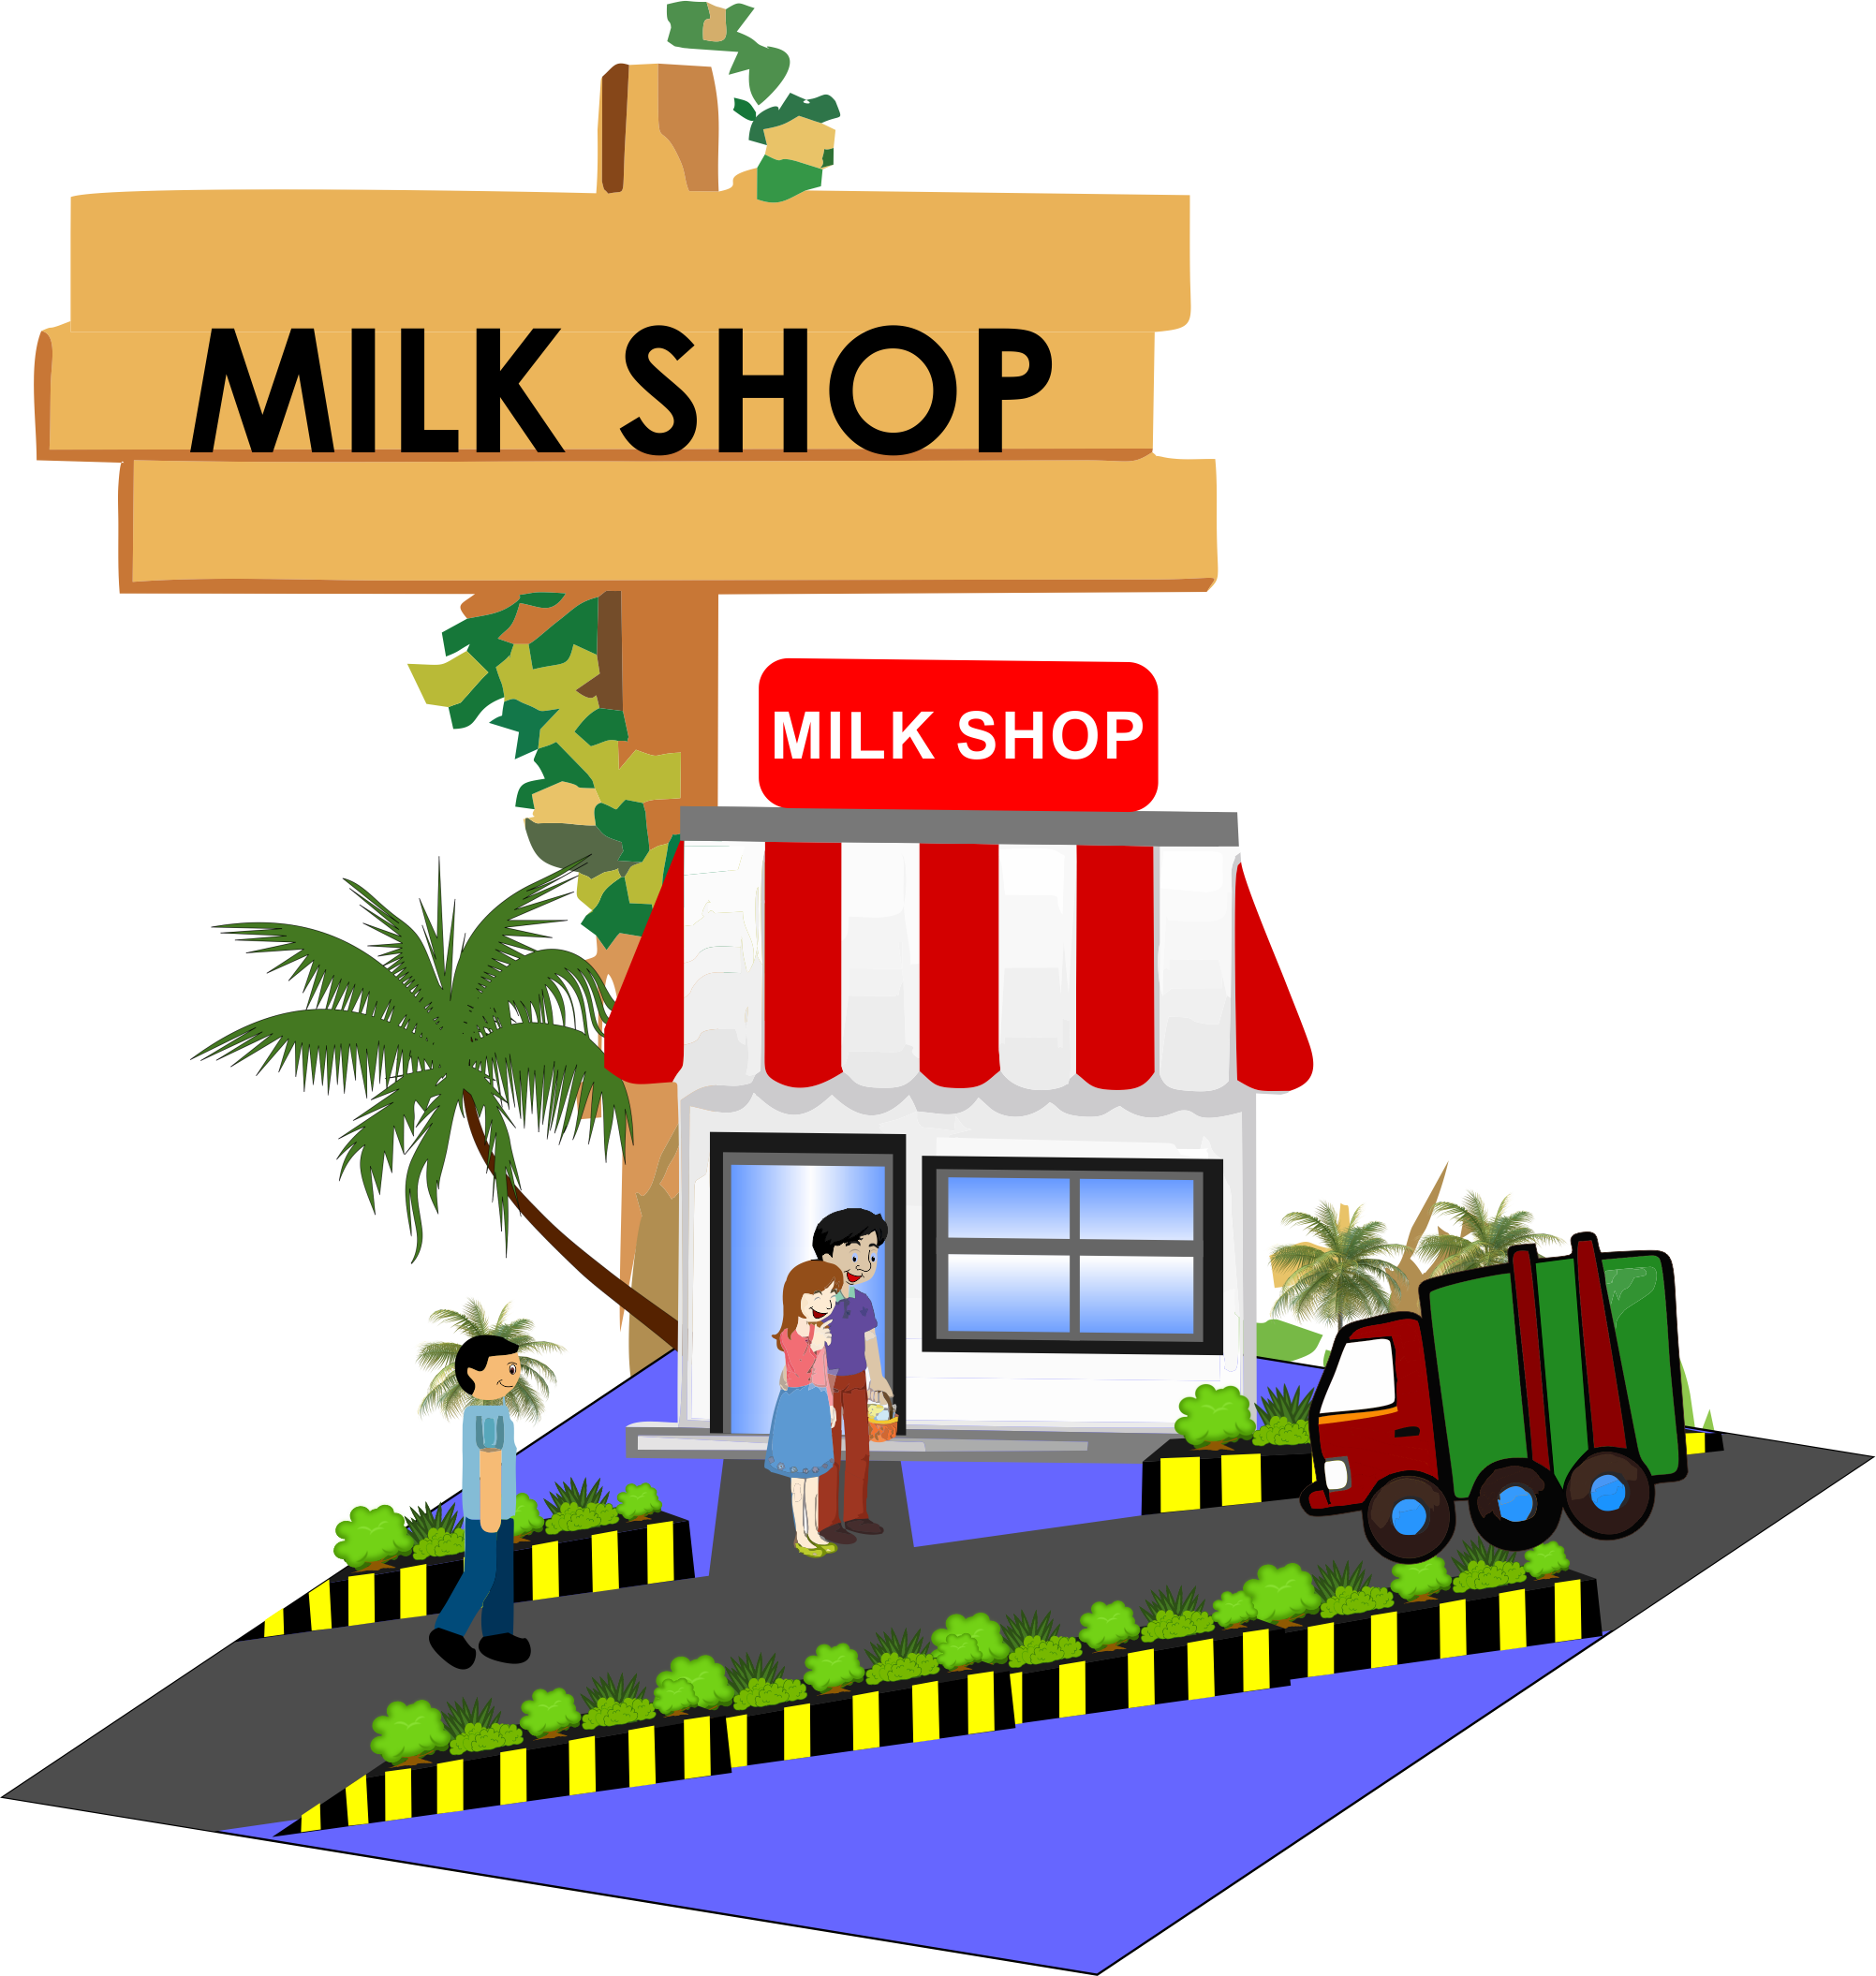 Dairy clipart dairy store. Ubale cyra usra our